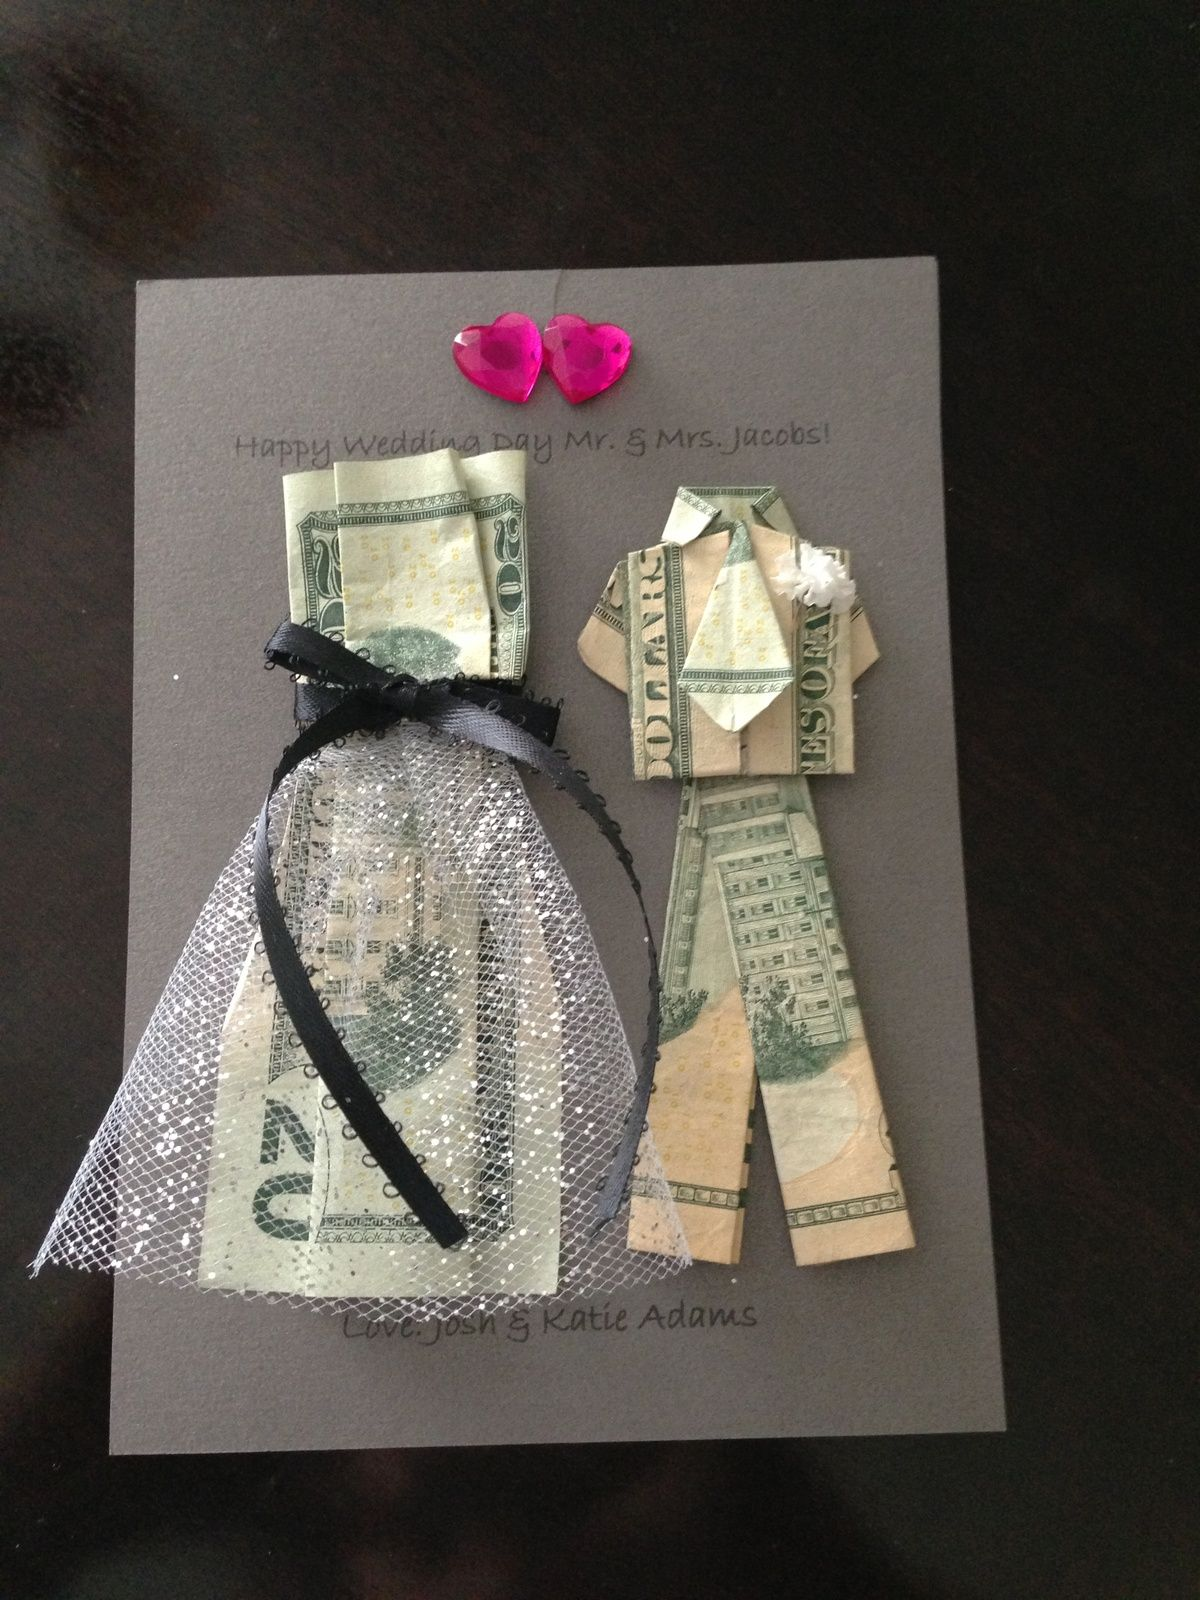 Great idea combining gift and card, wished there was